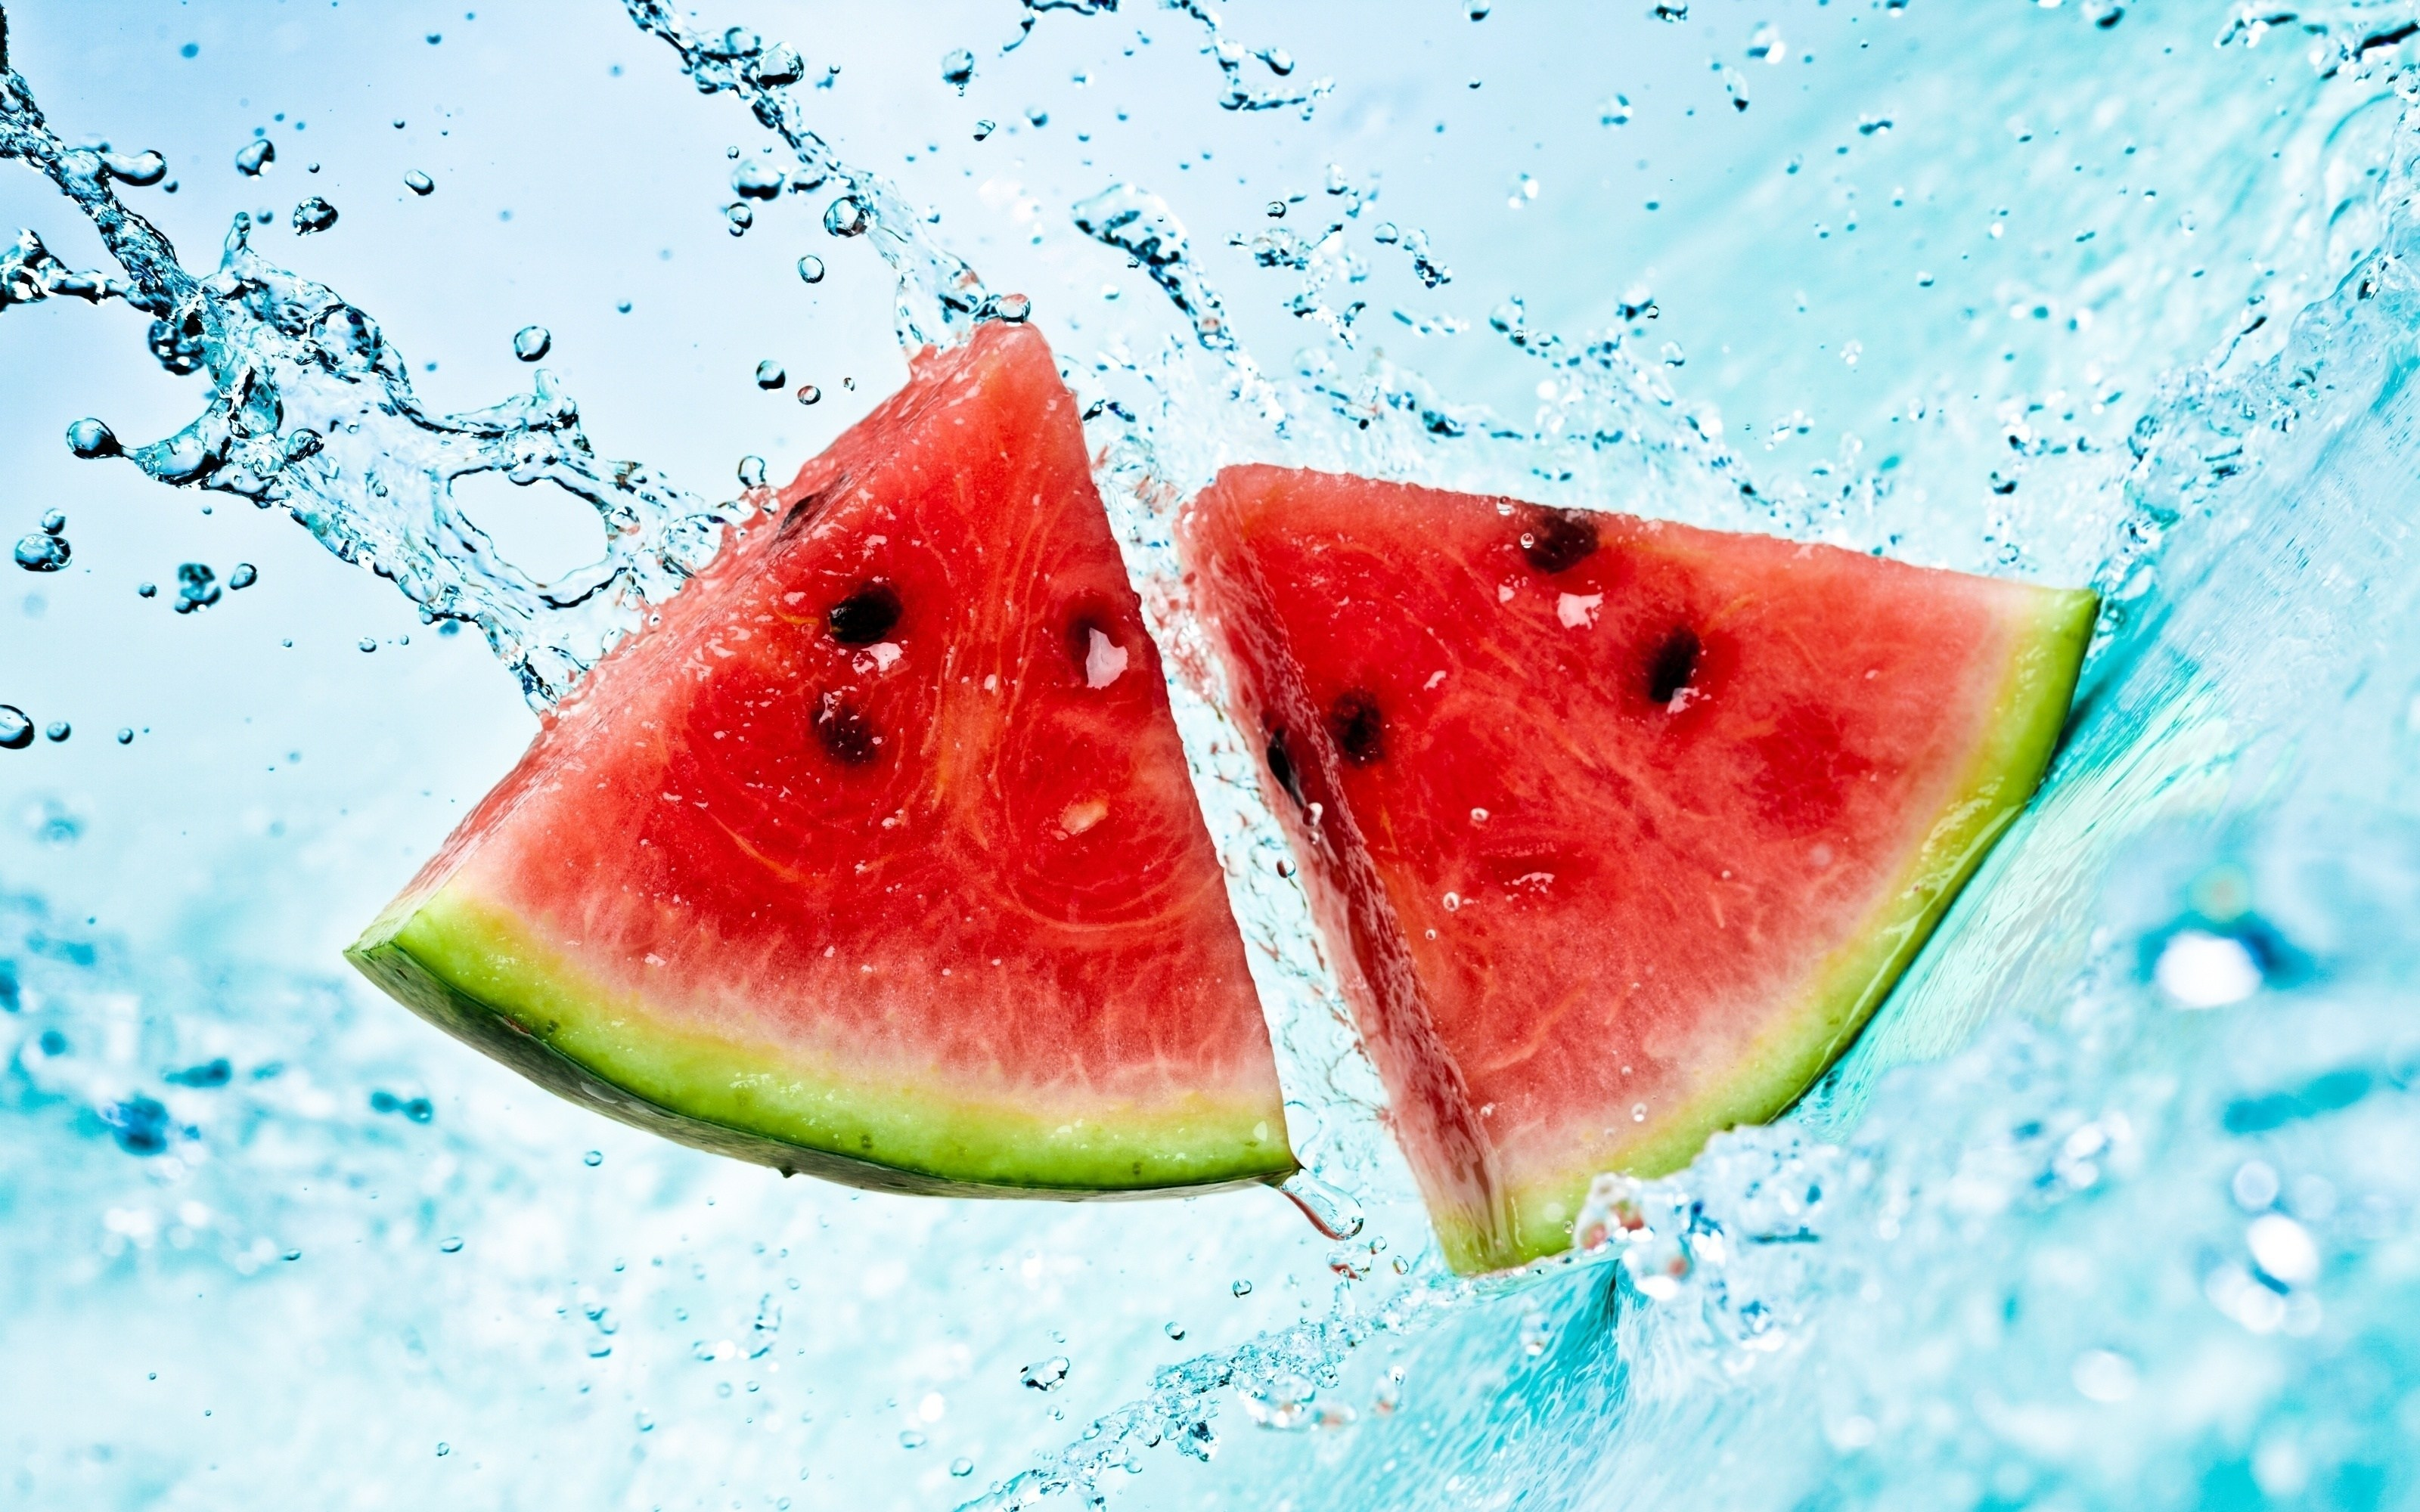 Watermelon-HD-Wallpapers